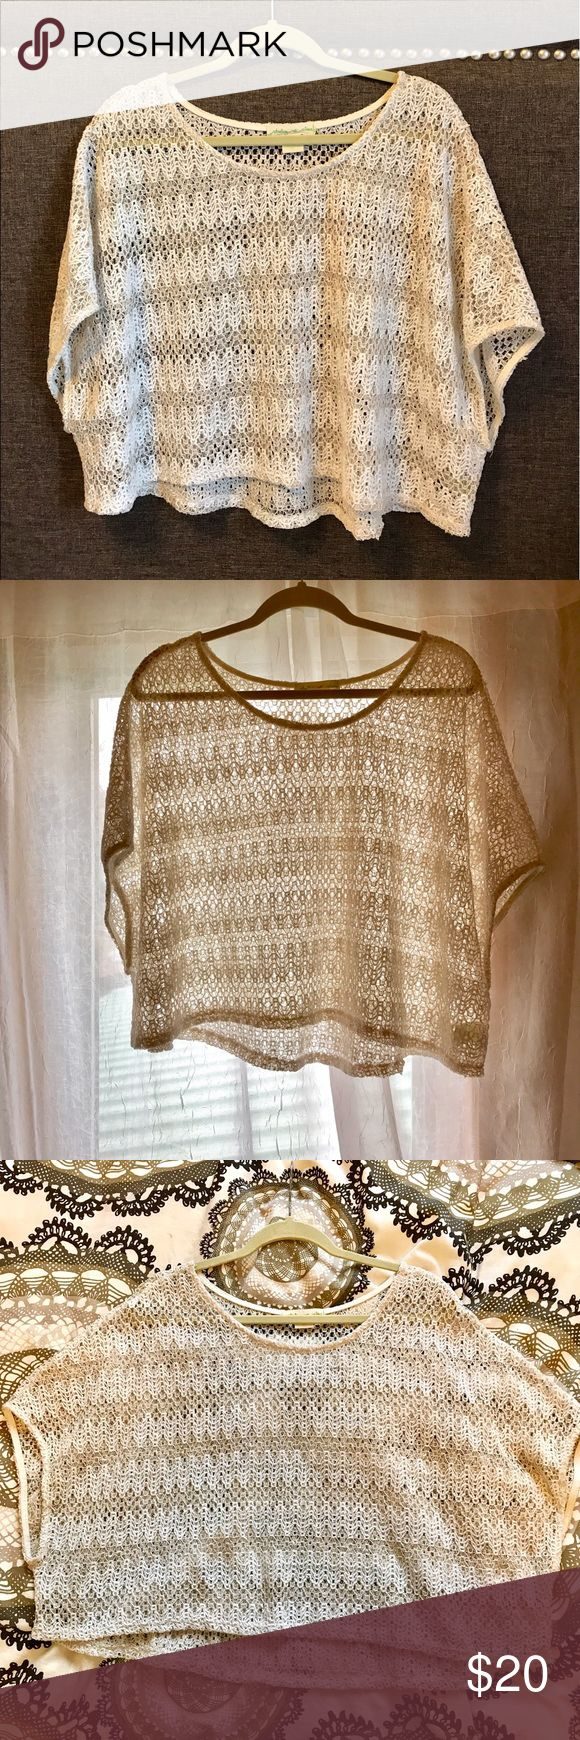 ANTHROPOLOGIE neutrally- sheer oversized crop Polyester & rayon, beautiful sheer knit crop tee, oversized fit, oversized armholes, slight high -low hem. White/ivory detailing throughout. This is a reposh from an amazing posher! Condition: NWOT. Measurements on photos; any questions and offers welcomed ! Anthropologie Tops Crop Tops